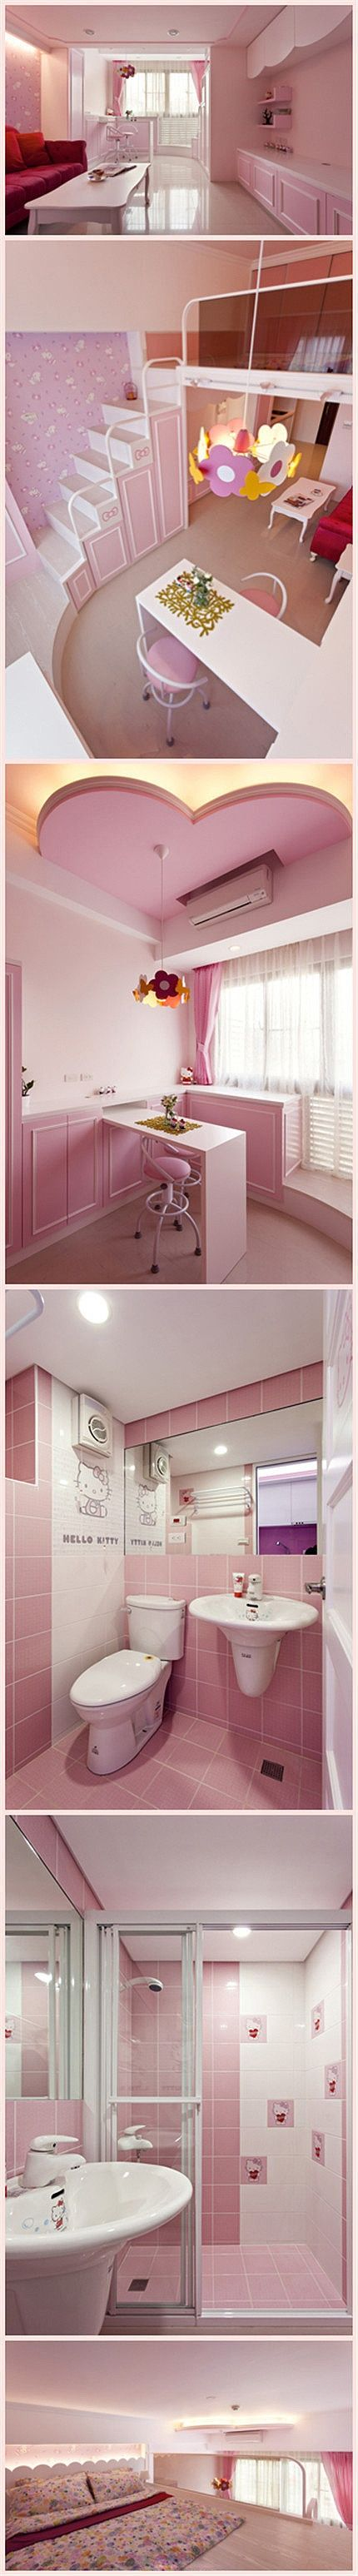 Duplex Hello Kitty nido I don't even like pink like that but I would totally live here! and like OMG! get some yourself some pawtastic adorable cat shirts, cat socks, and other cat apparel by tapping the pin!